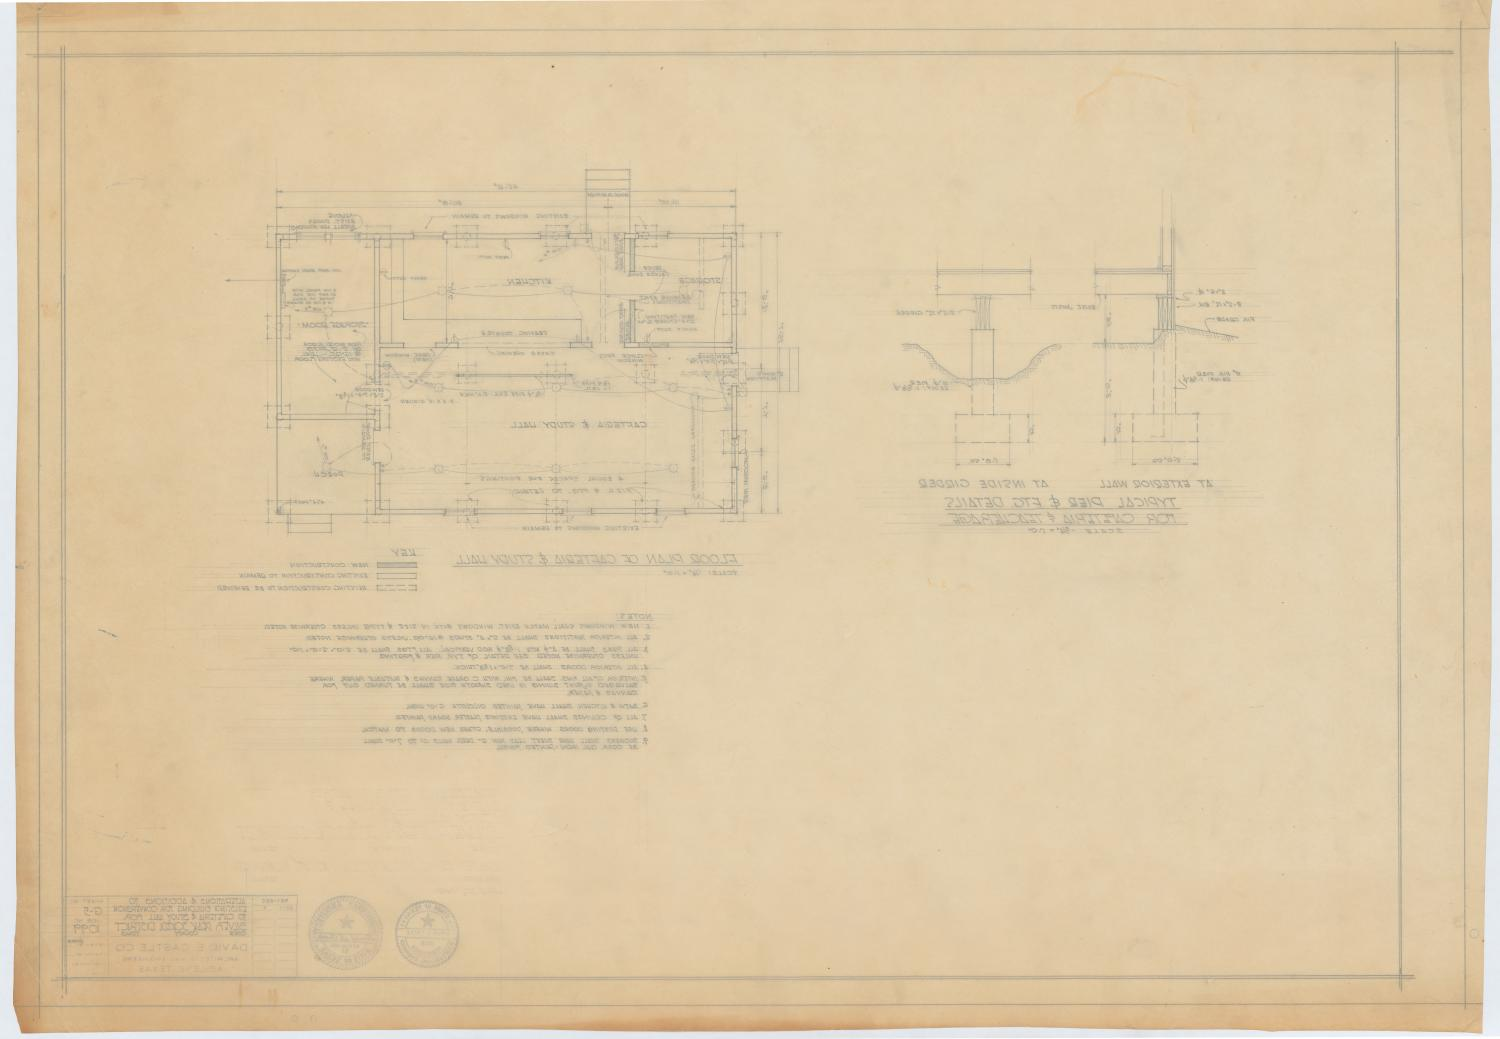 Silver Peak School Alterations, Silver, Texas: Floor Plan                                                                                                      [Sequence #]: 2 of 2